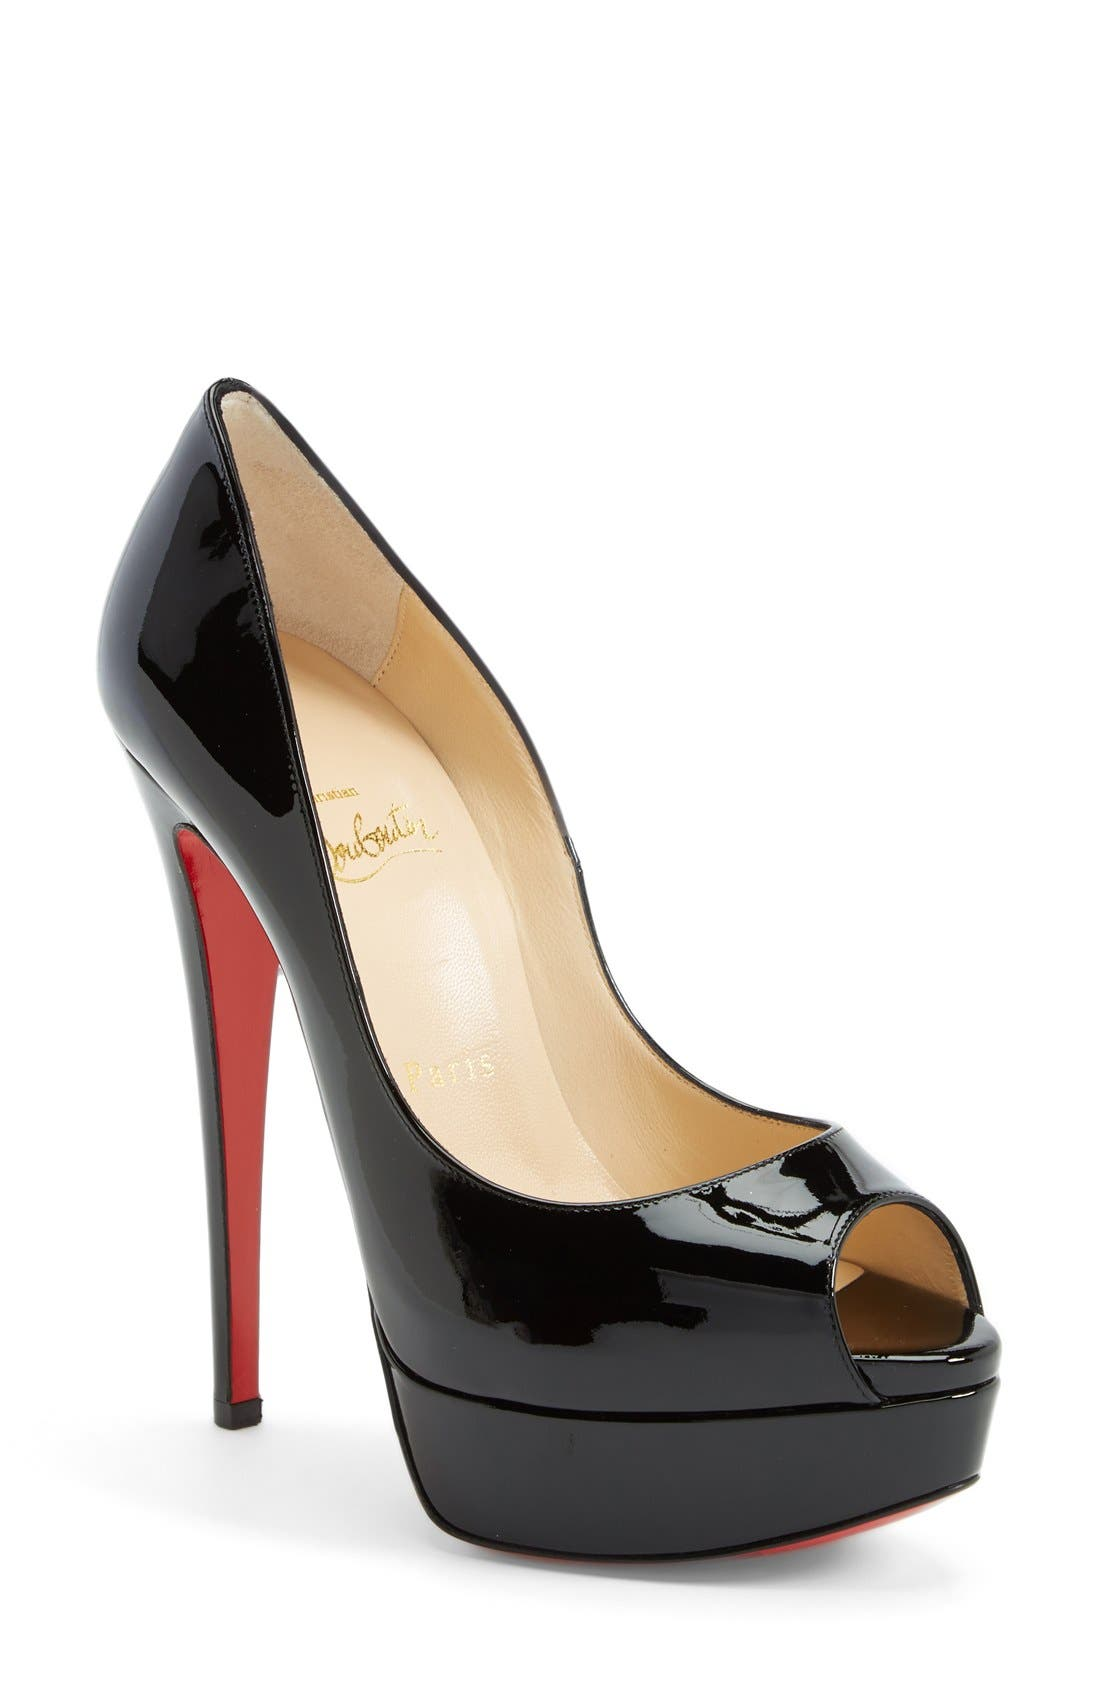 CHRISTIAN LOUBOUTIN 'Lady Peep' Open Toe Pump, Main, color, 002